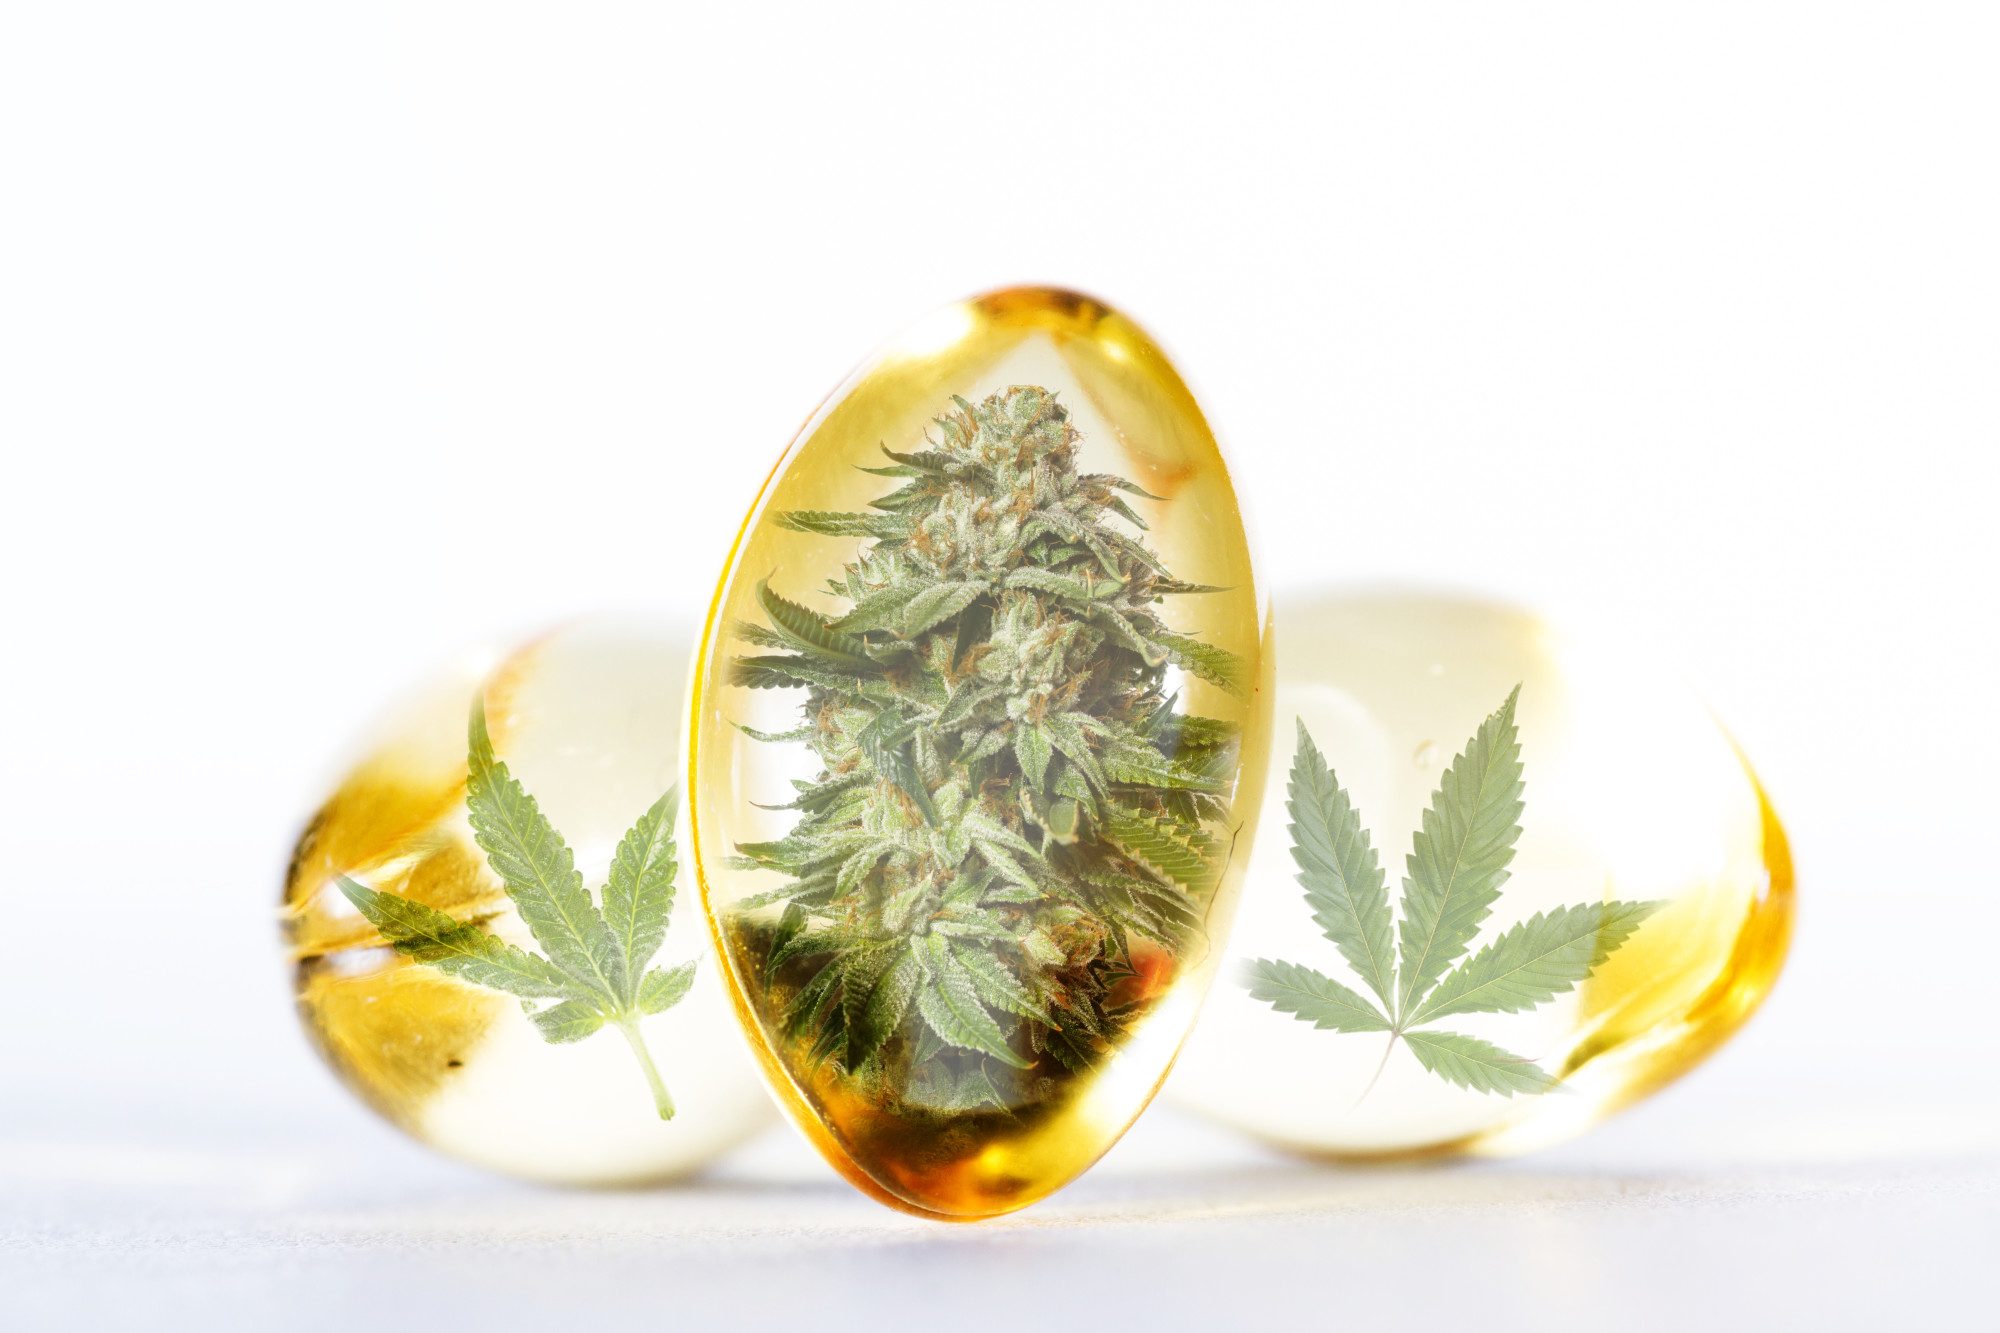 The Top 8 Shocking Benefits To Using CBD Oil